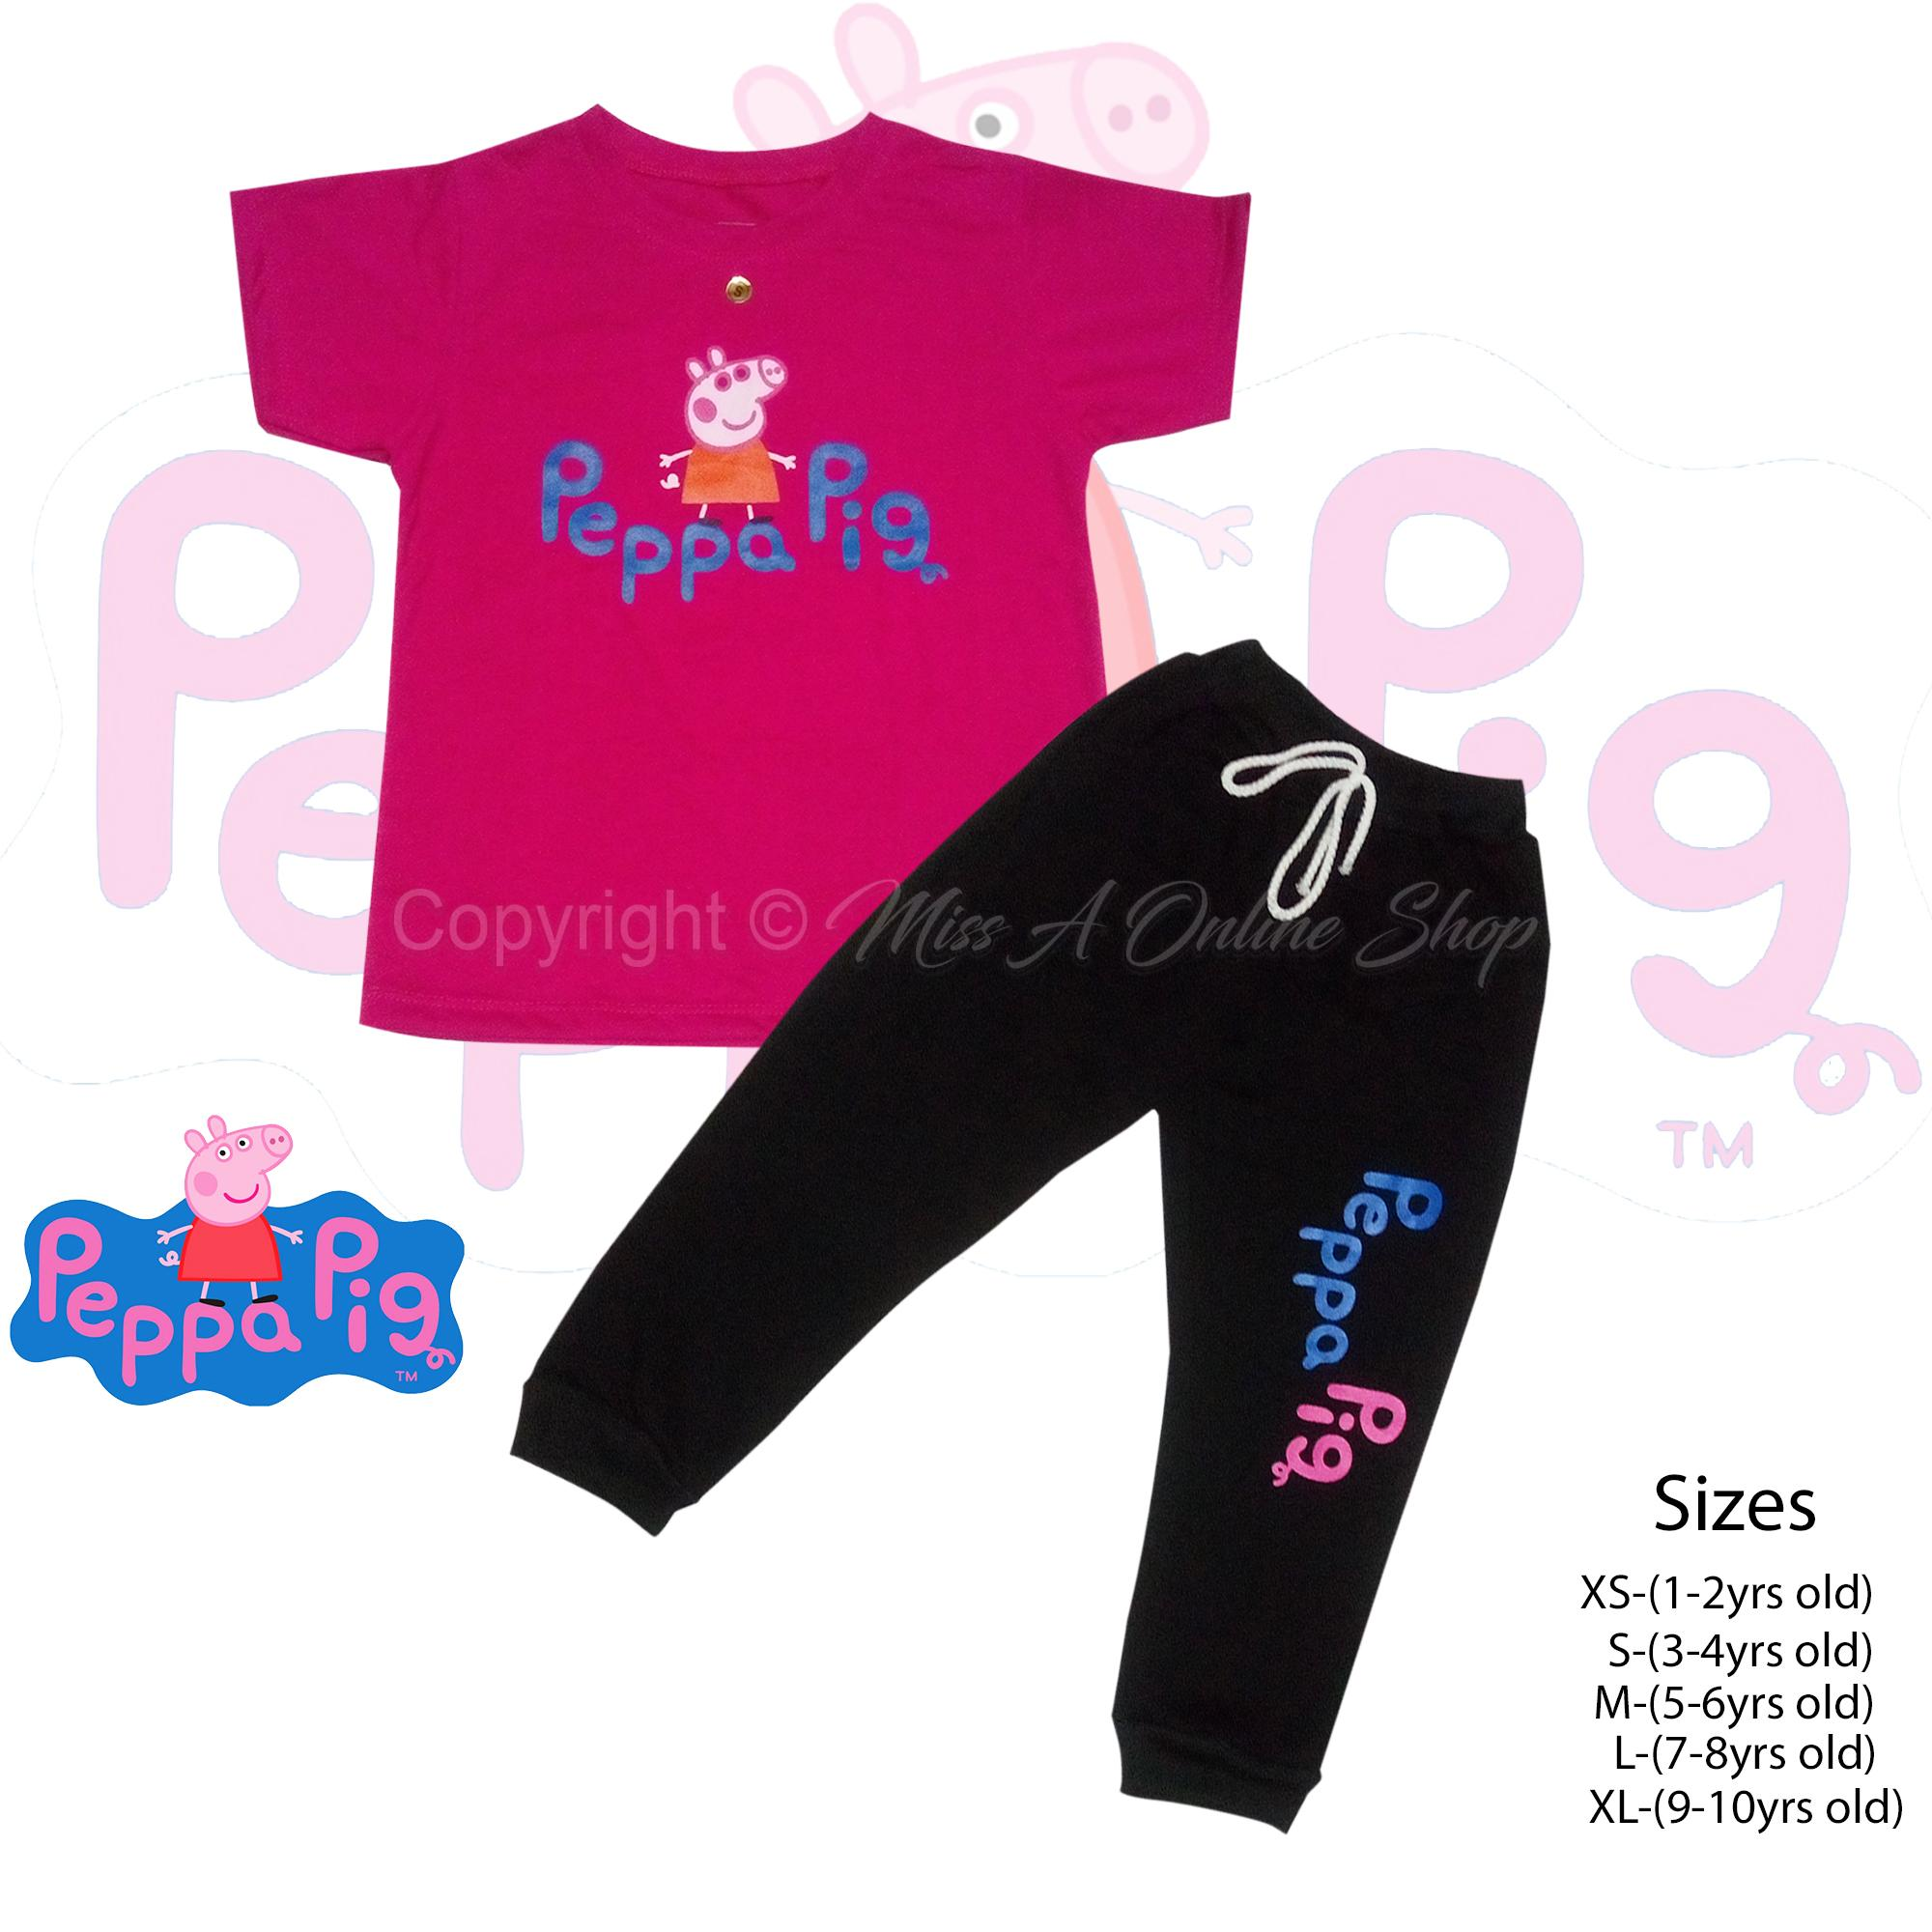 a9640562a Girls Clothing Sets for sale - Clothing Sets for Baby Girls online ...